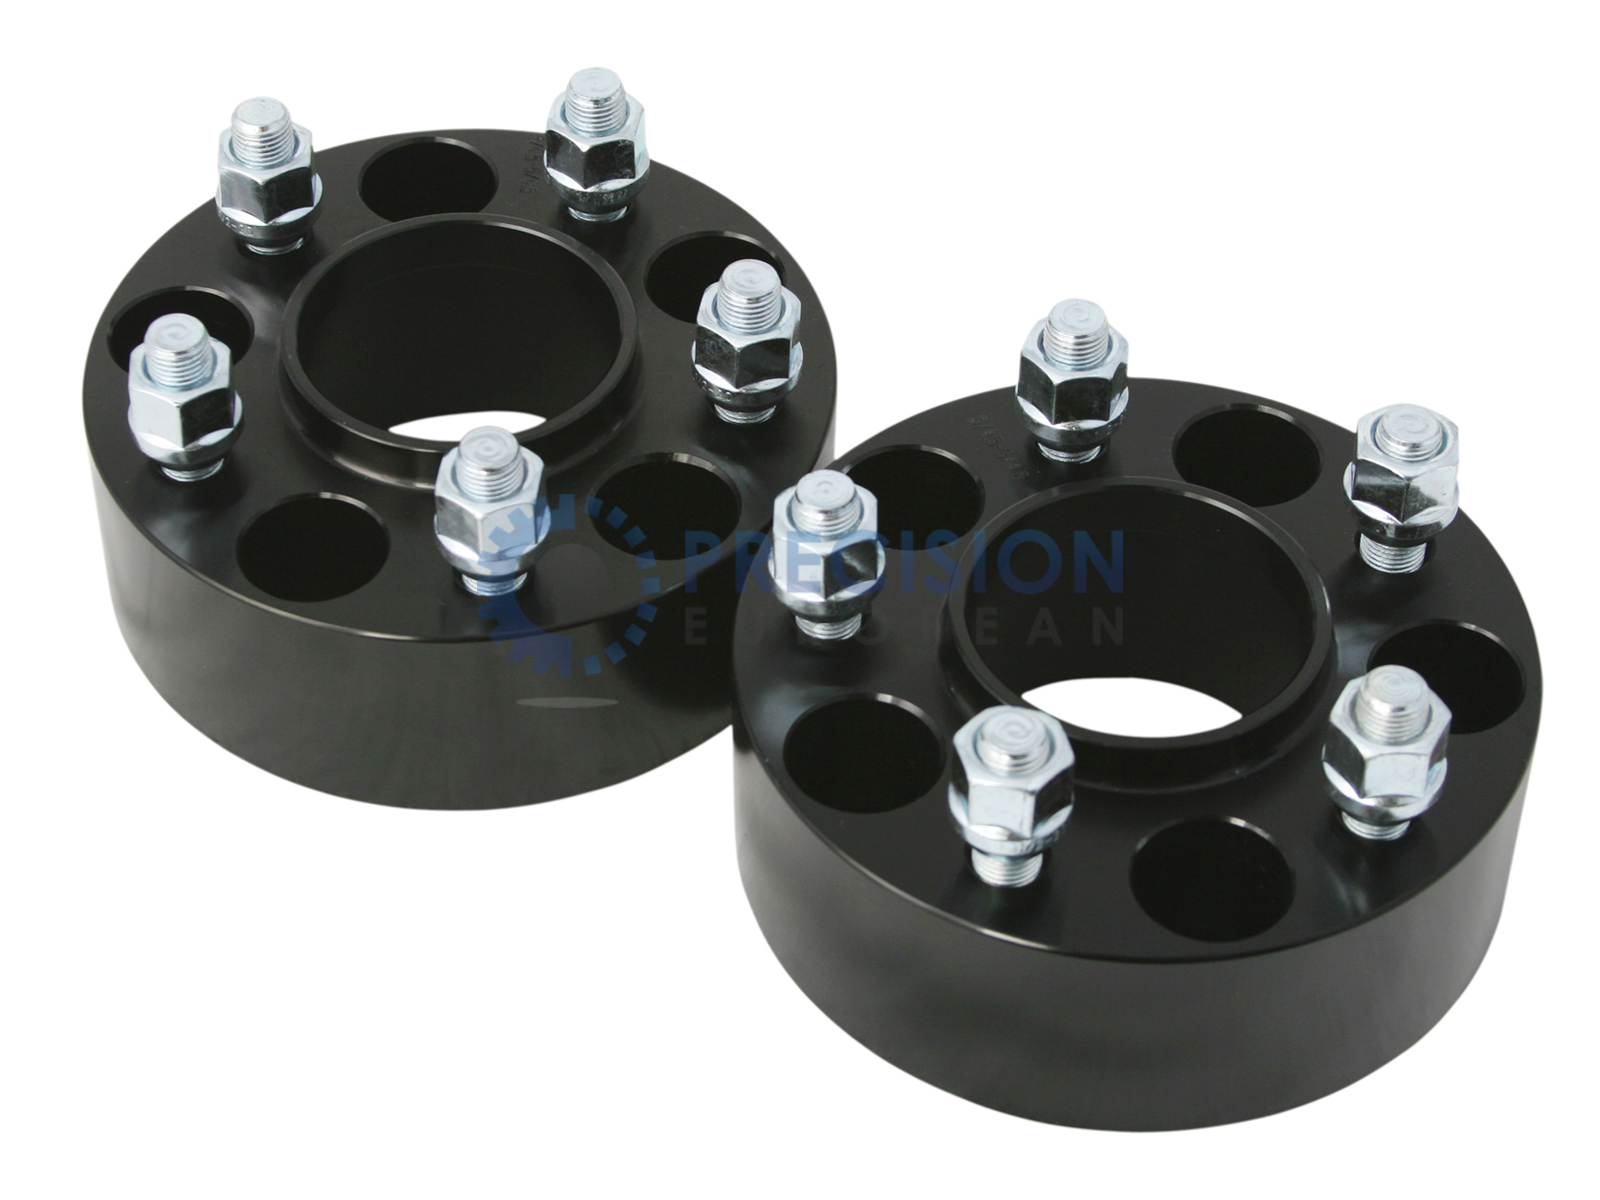 1 Inch Wheel Spacers : Inch jeep hubcentric wheel spacers